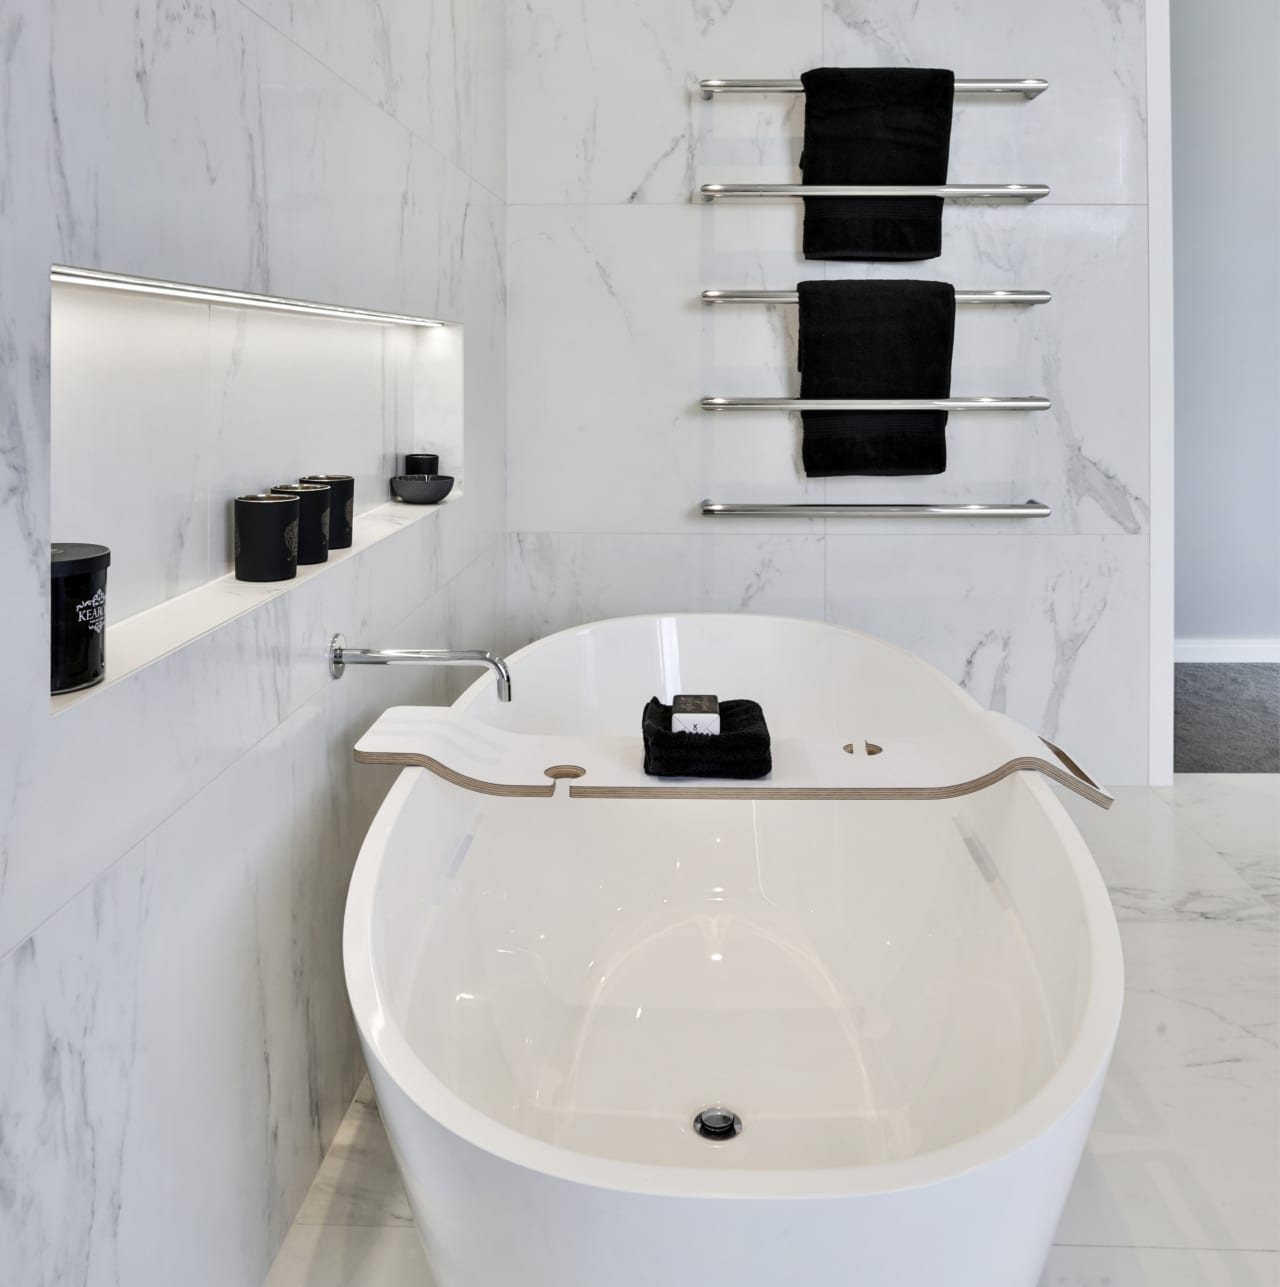 Marble Look Tiles Make This Bathroom A Trends